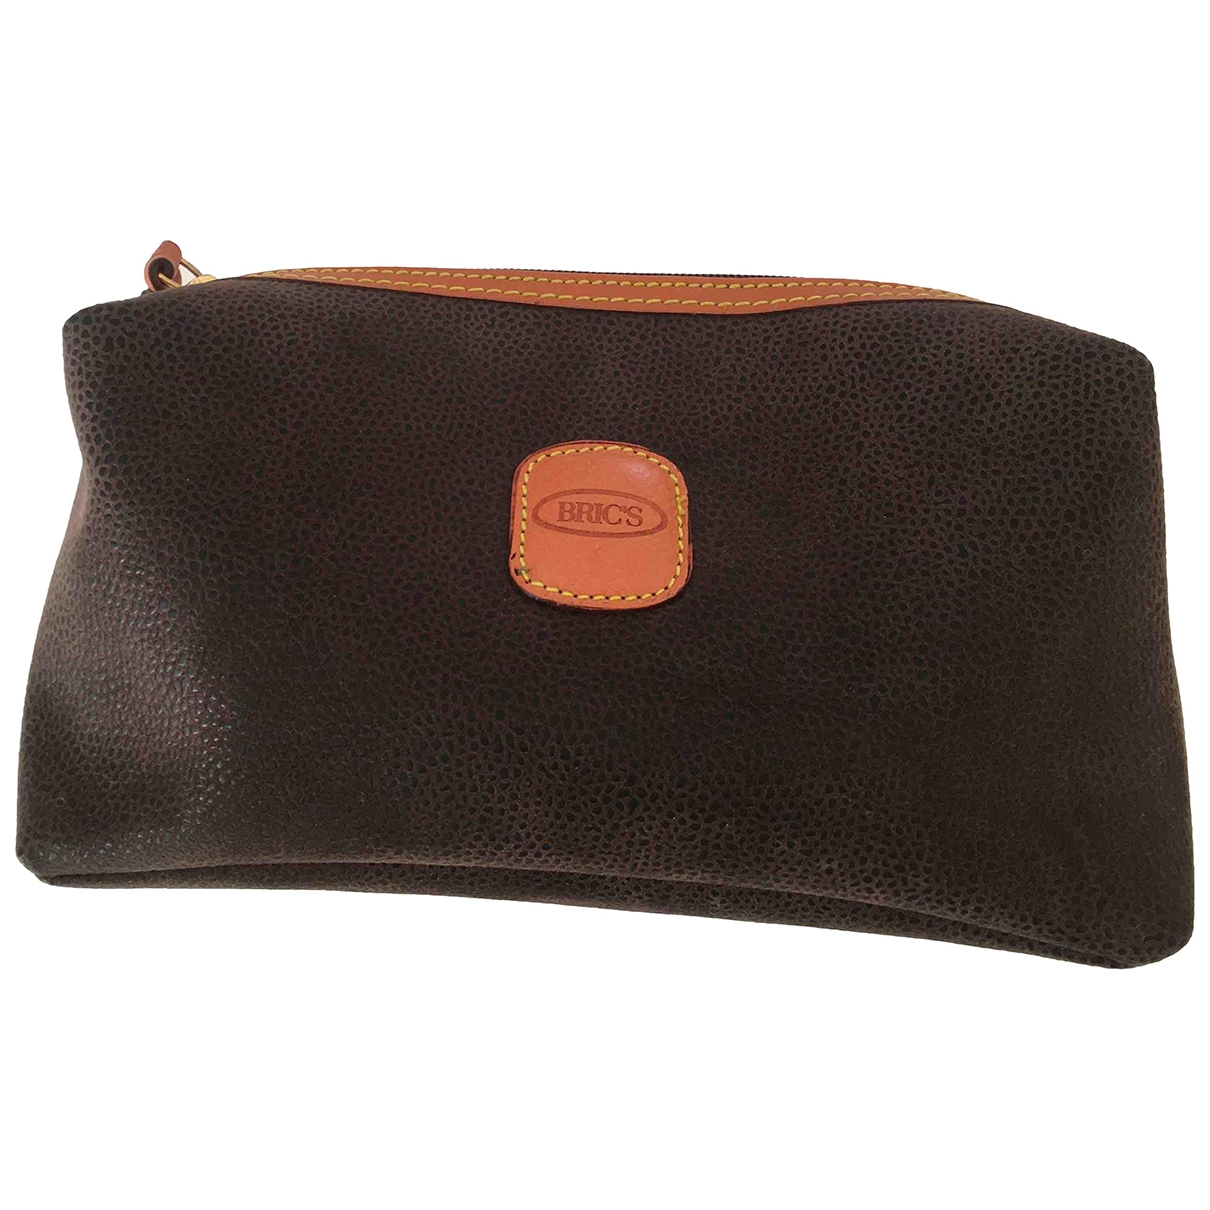 Bric's \N Brown Leather Clutch bag for Women \N